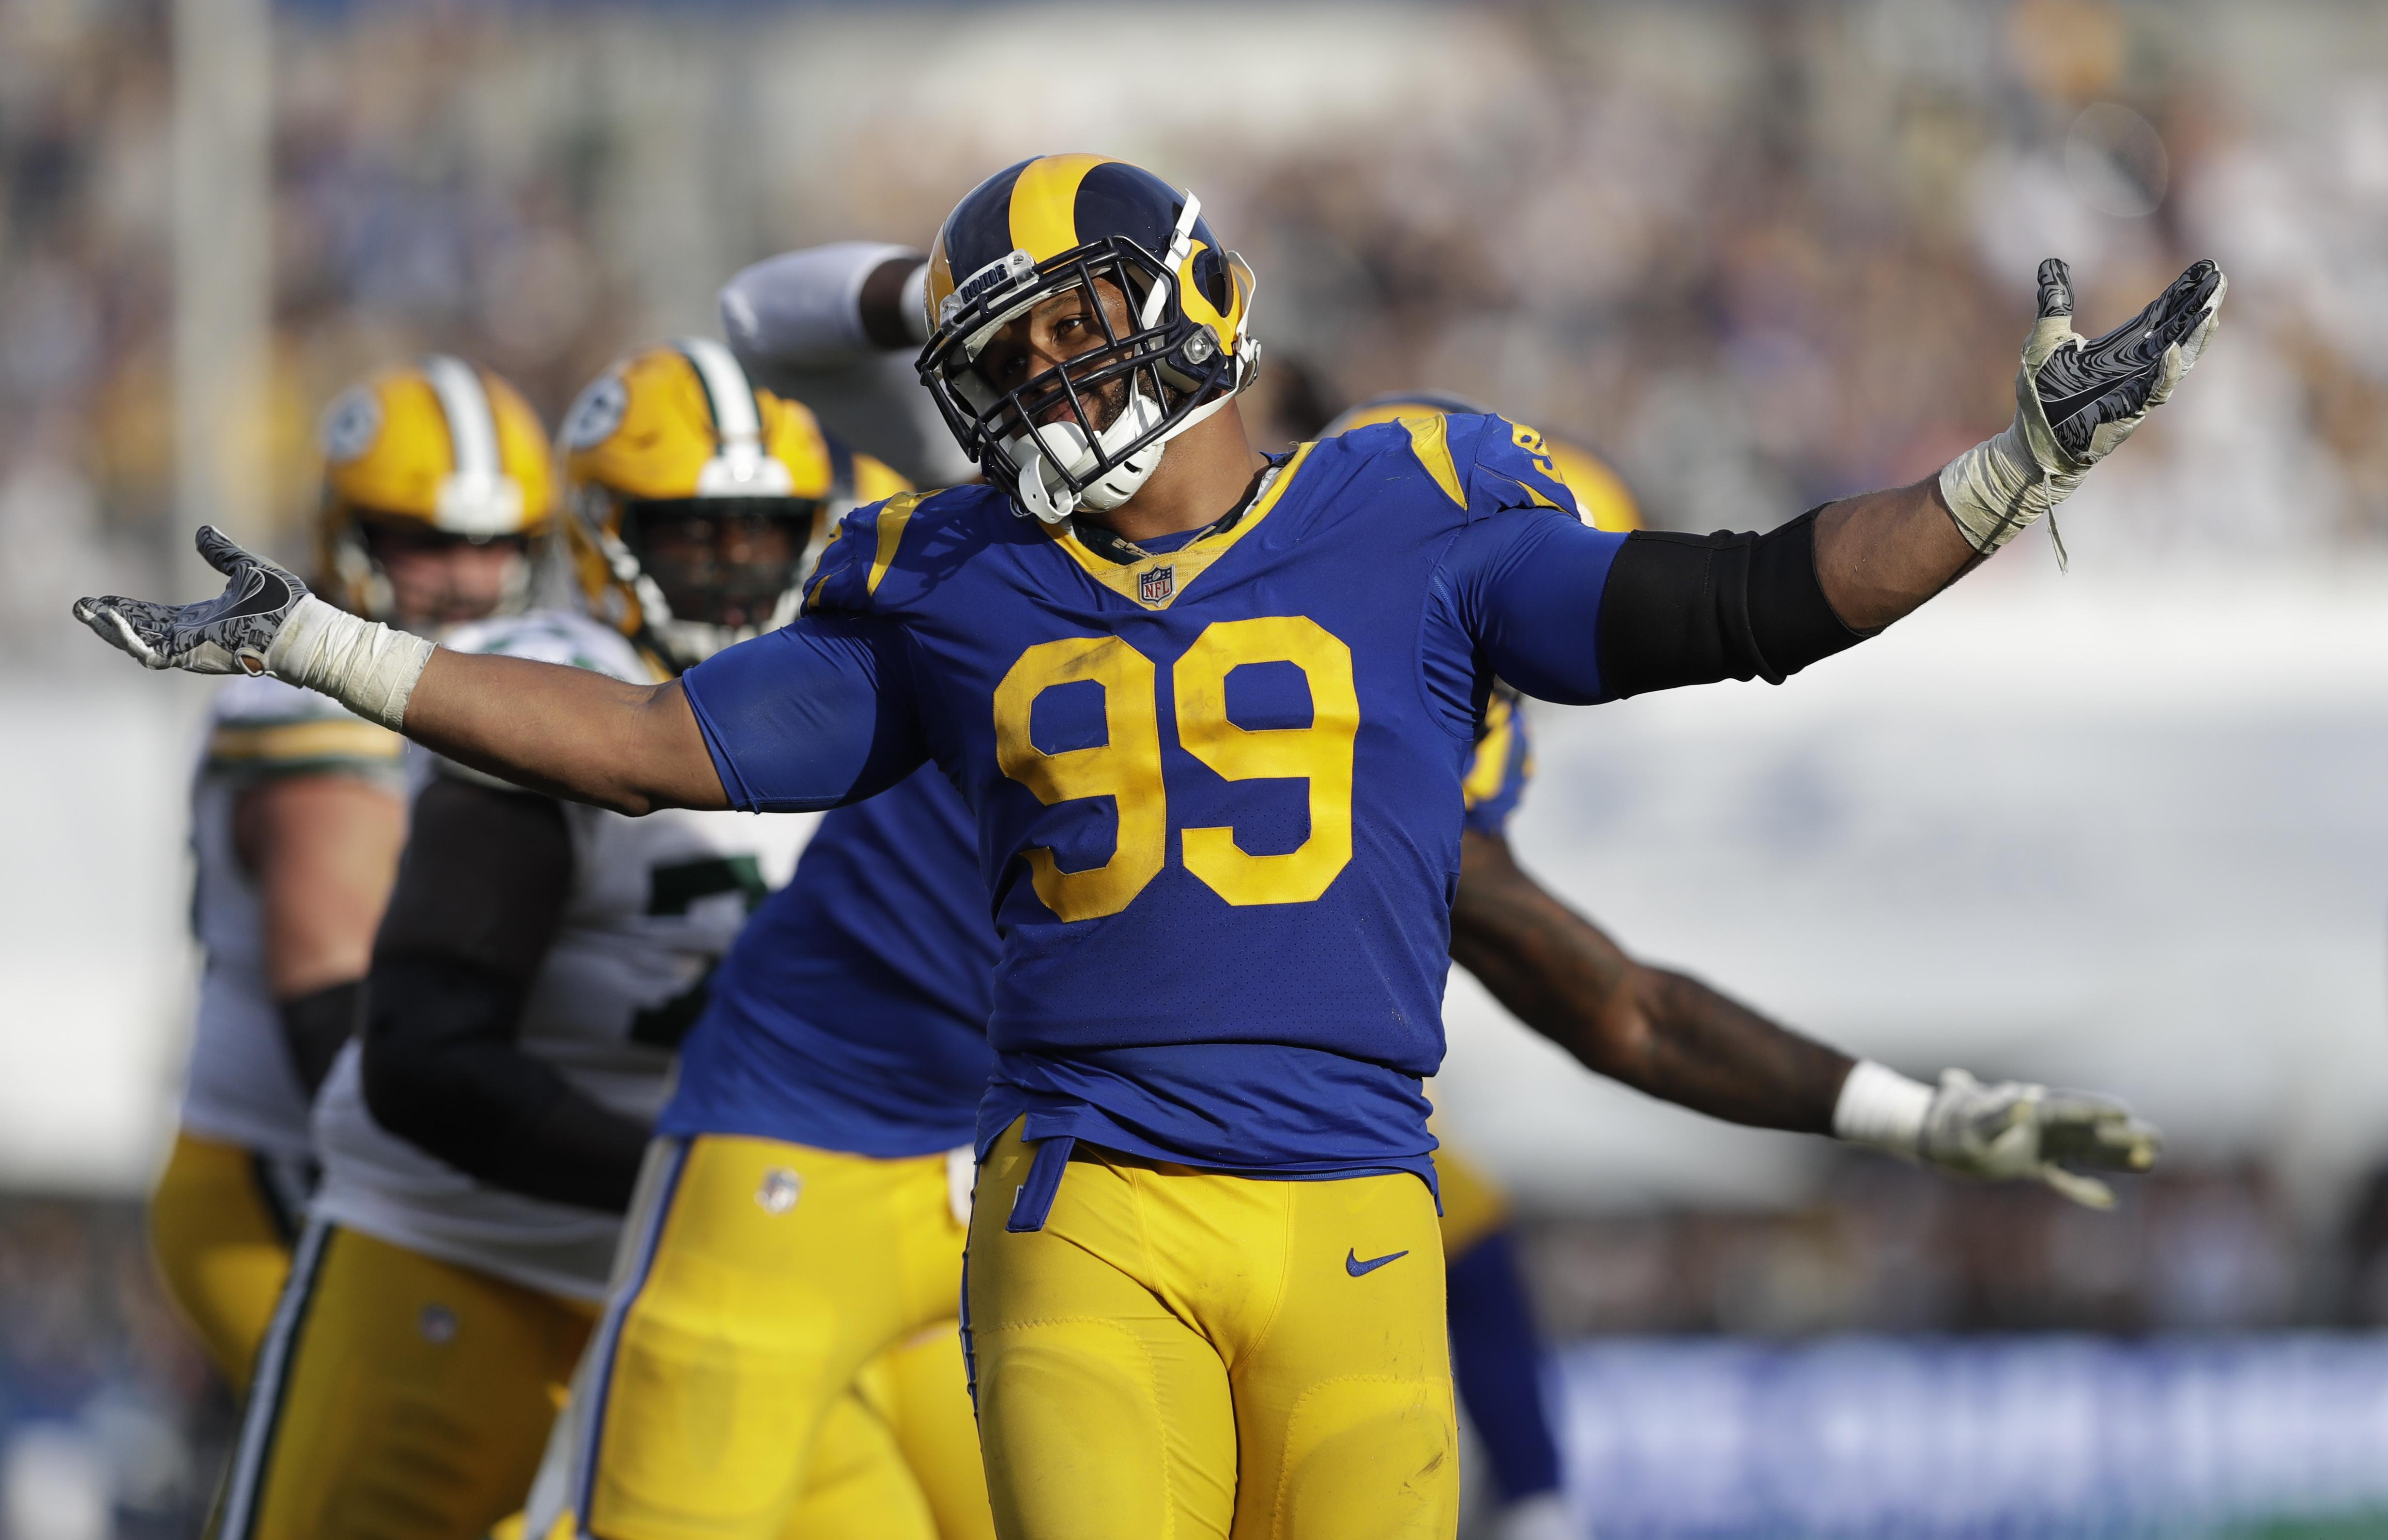 fd2045ff3 Los Angeles Rams defensive tackle Aaron Donald reacts after sacking Green  Bay Packers quarterback Aaron Rodgers